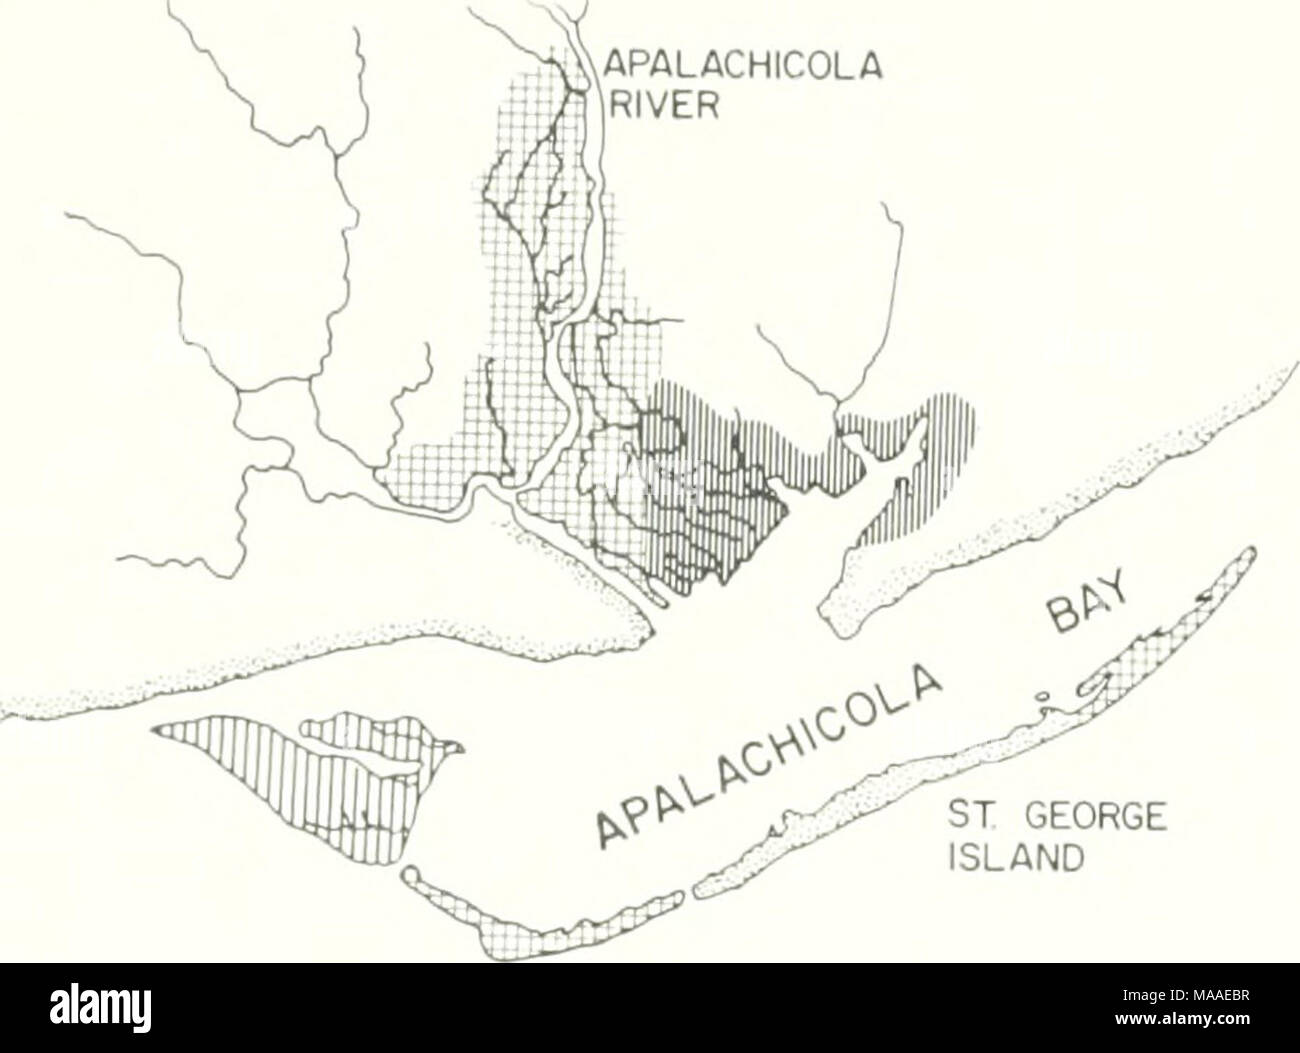 Regional Court Council Stock Photos Ell Br Door Wiring Diagram The Ecology Of Apalachicola Bay System An Estuarine Profile St George Island